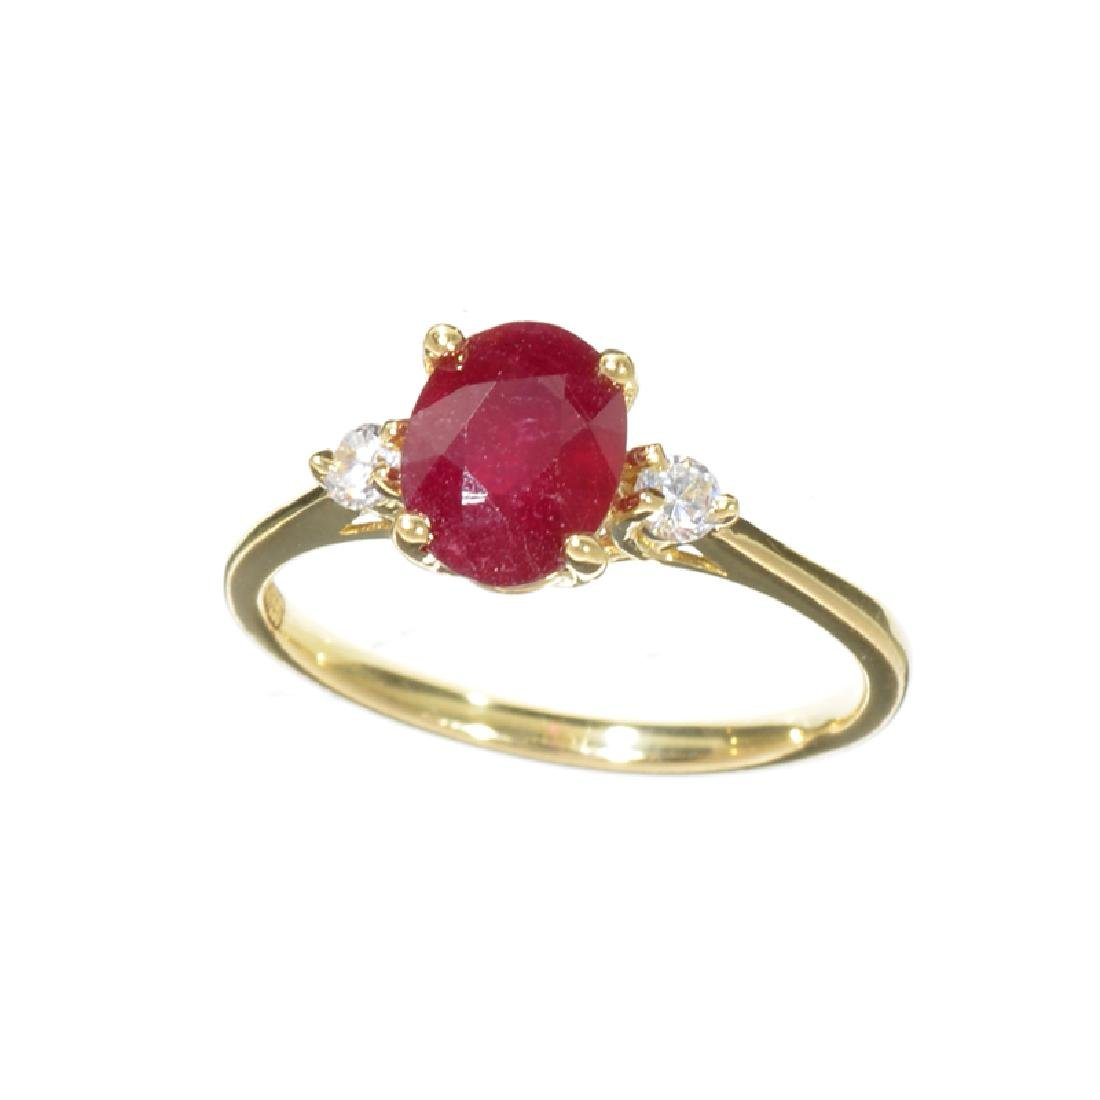 APP: 1k Fine Jewelry 14KT Gold, 1.53CT Red Ruby And